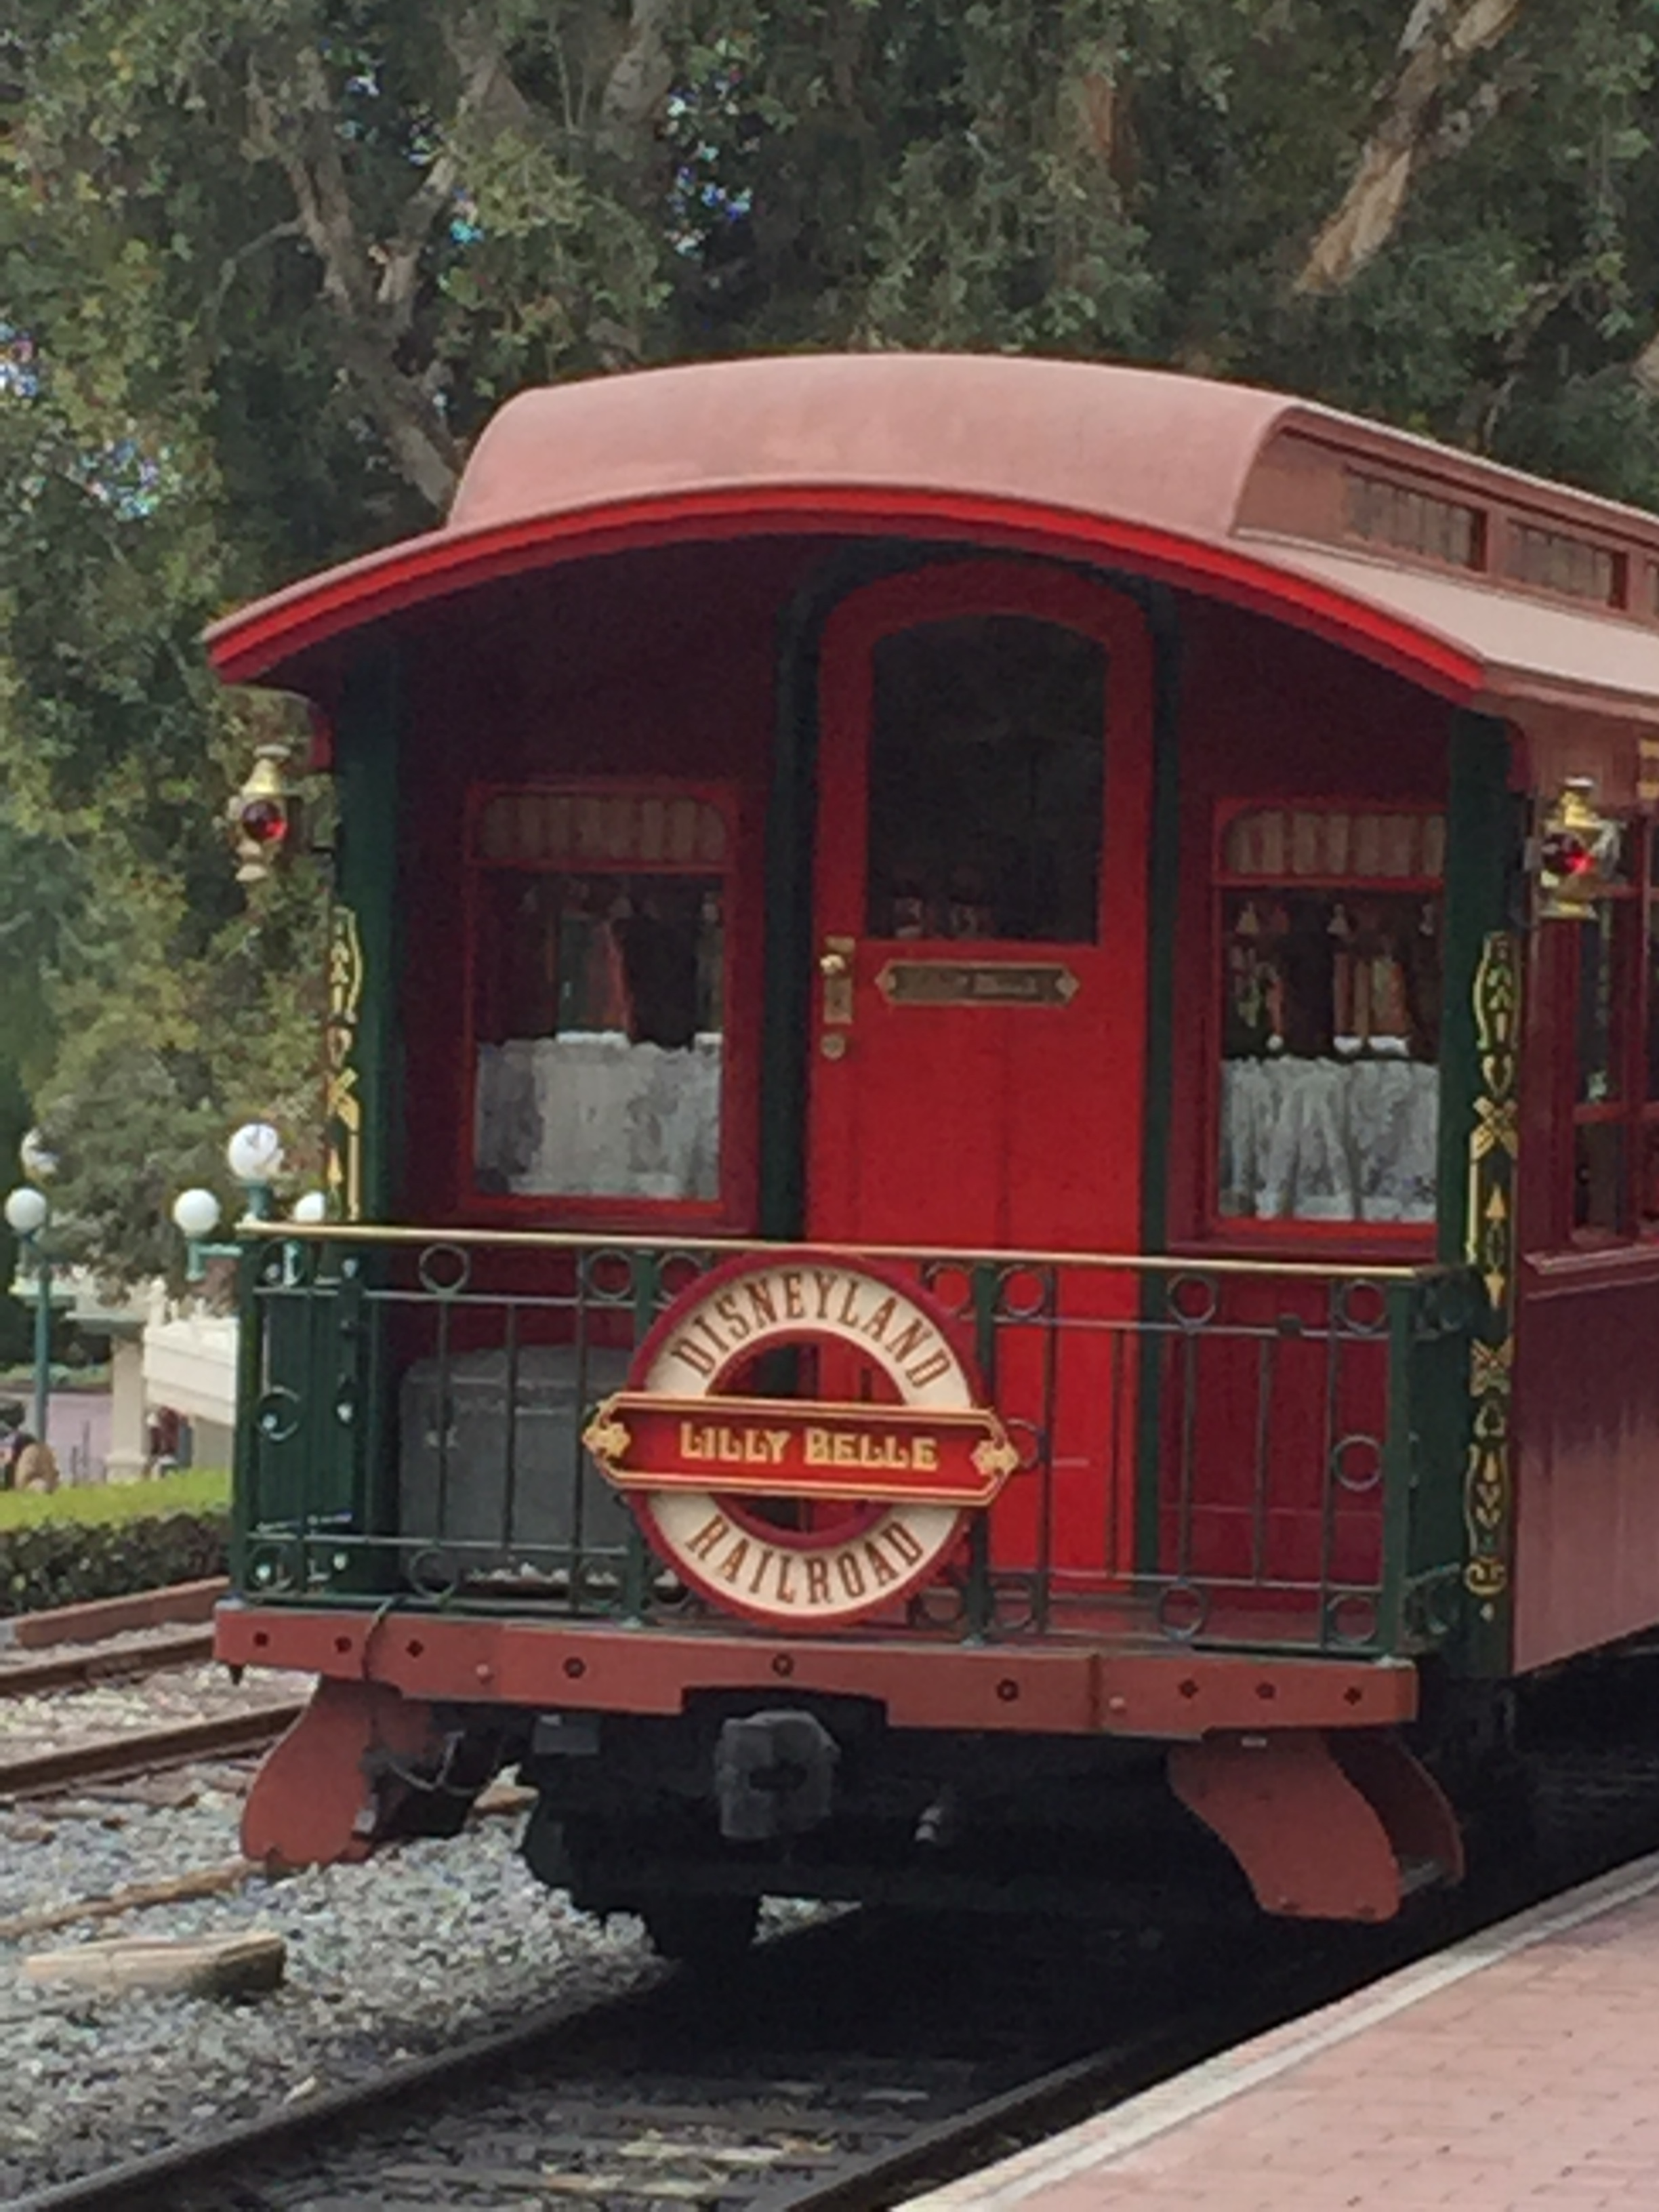 Experiencing the Lilly Belle